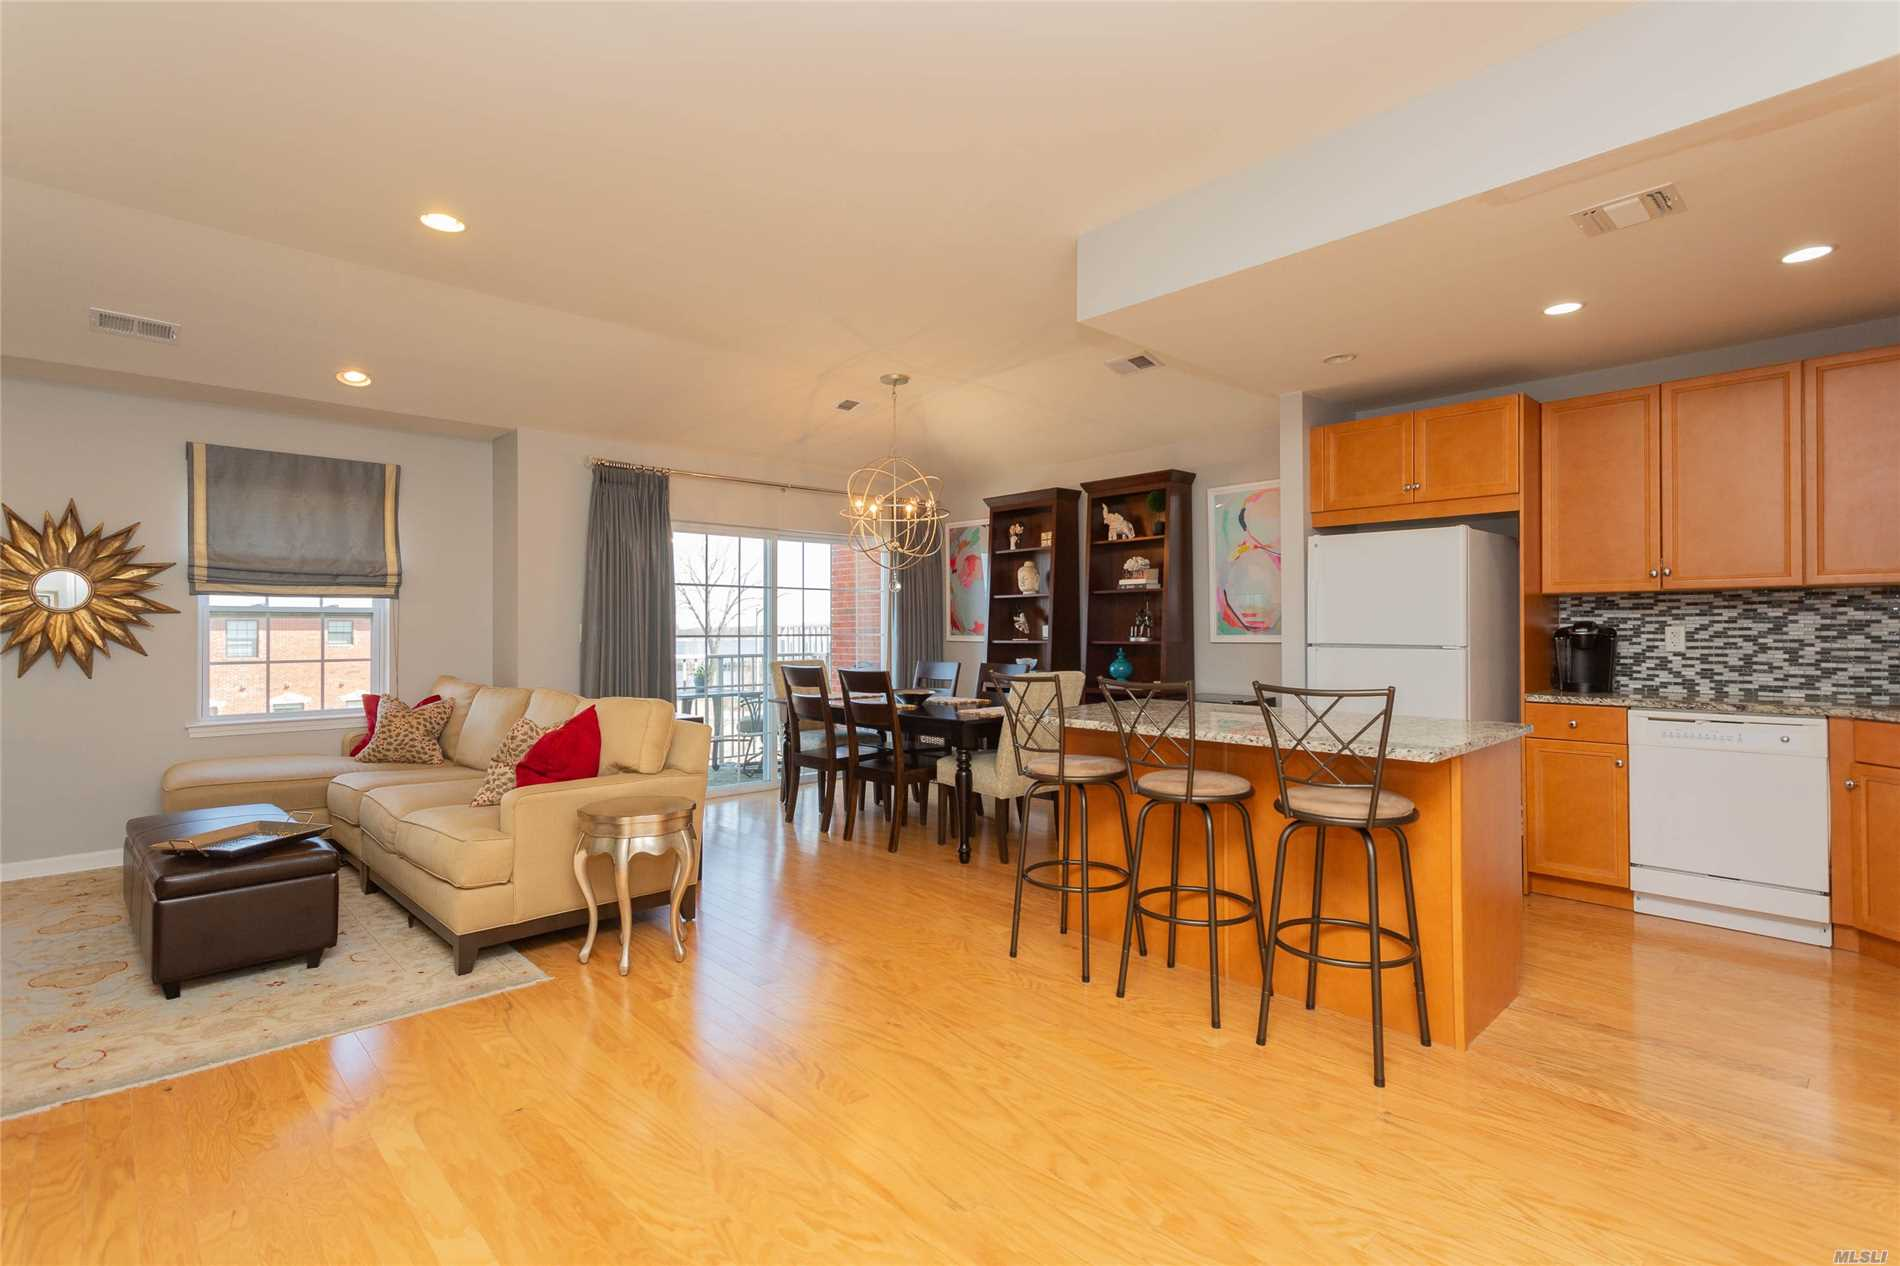 Beautiful, Spacious 3 Bedroom Condo. Brick, Top Floor. Approx. 1413 Sqft. 2 Baths & Terrace. Garage W/ Driveway (2 Parking Spcs). Views Of River, Promenade, Waterfront Park & Whitestone Bridge. Energy Star Rated. High Ceilings, Hdwd Flrs., Kit W/ Granite Counter Tops, Cac. Quiet Nbhd. Access To 6 Acre Waterfront Park. Pvt Setting, Landscaped Grounds & N/Hood Video Surveillance System..421 A Tax Abatement Discount Reduces Annual Taxes To $789 Annually. Near Schools, Transportation & Macneil Park.